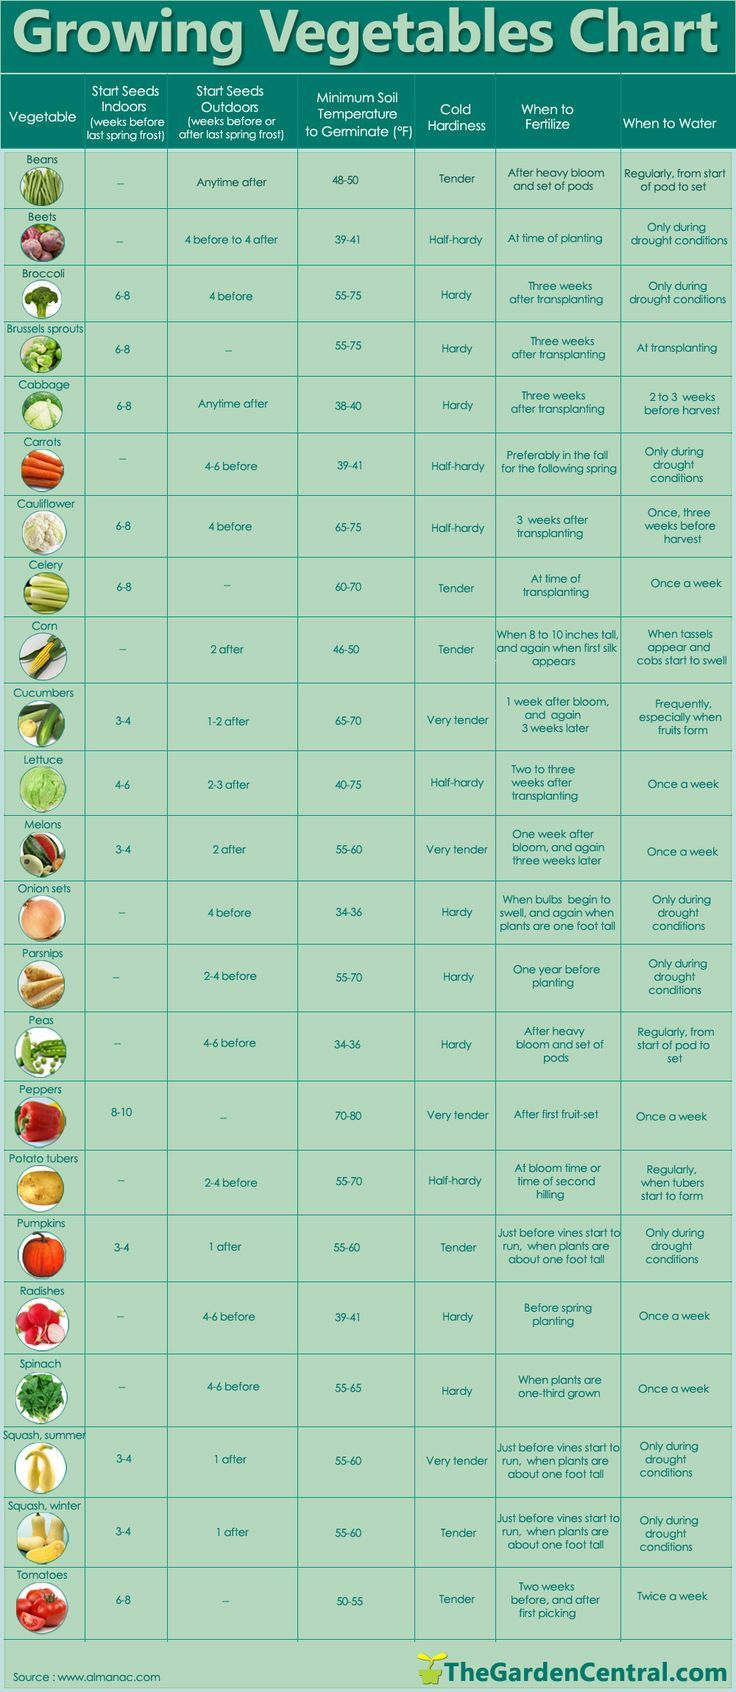 Garden Veggie Chart- Growing cukes, and tomatoes.. trying boysenberries, blueberries and red raspberries. So far not having huge success with the fruit. any suggestions welcome.